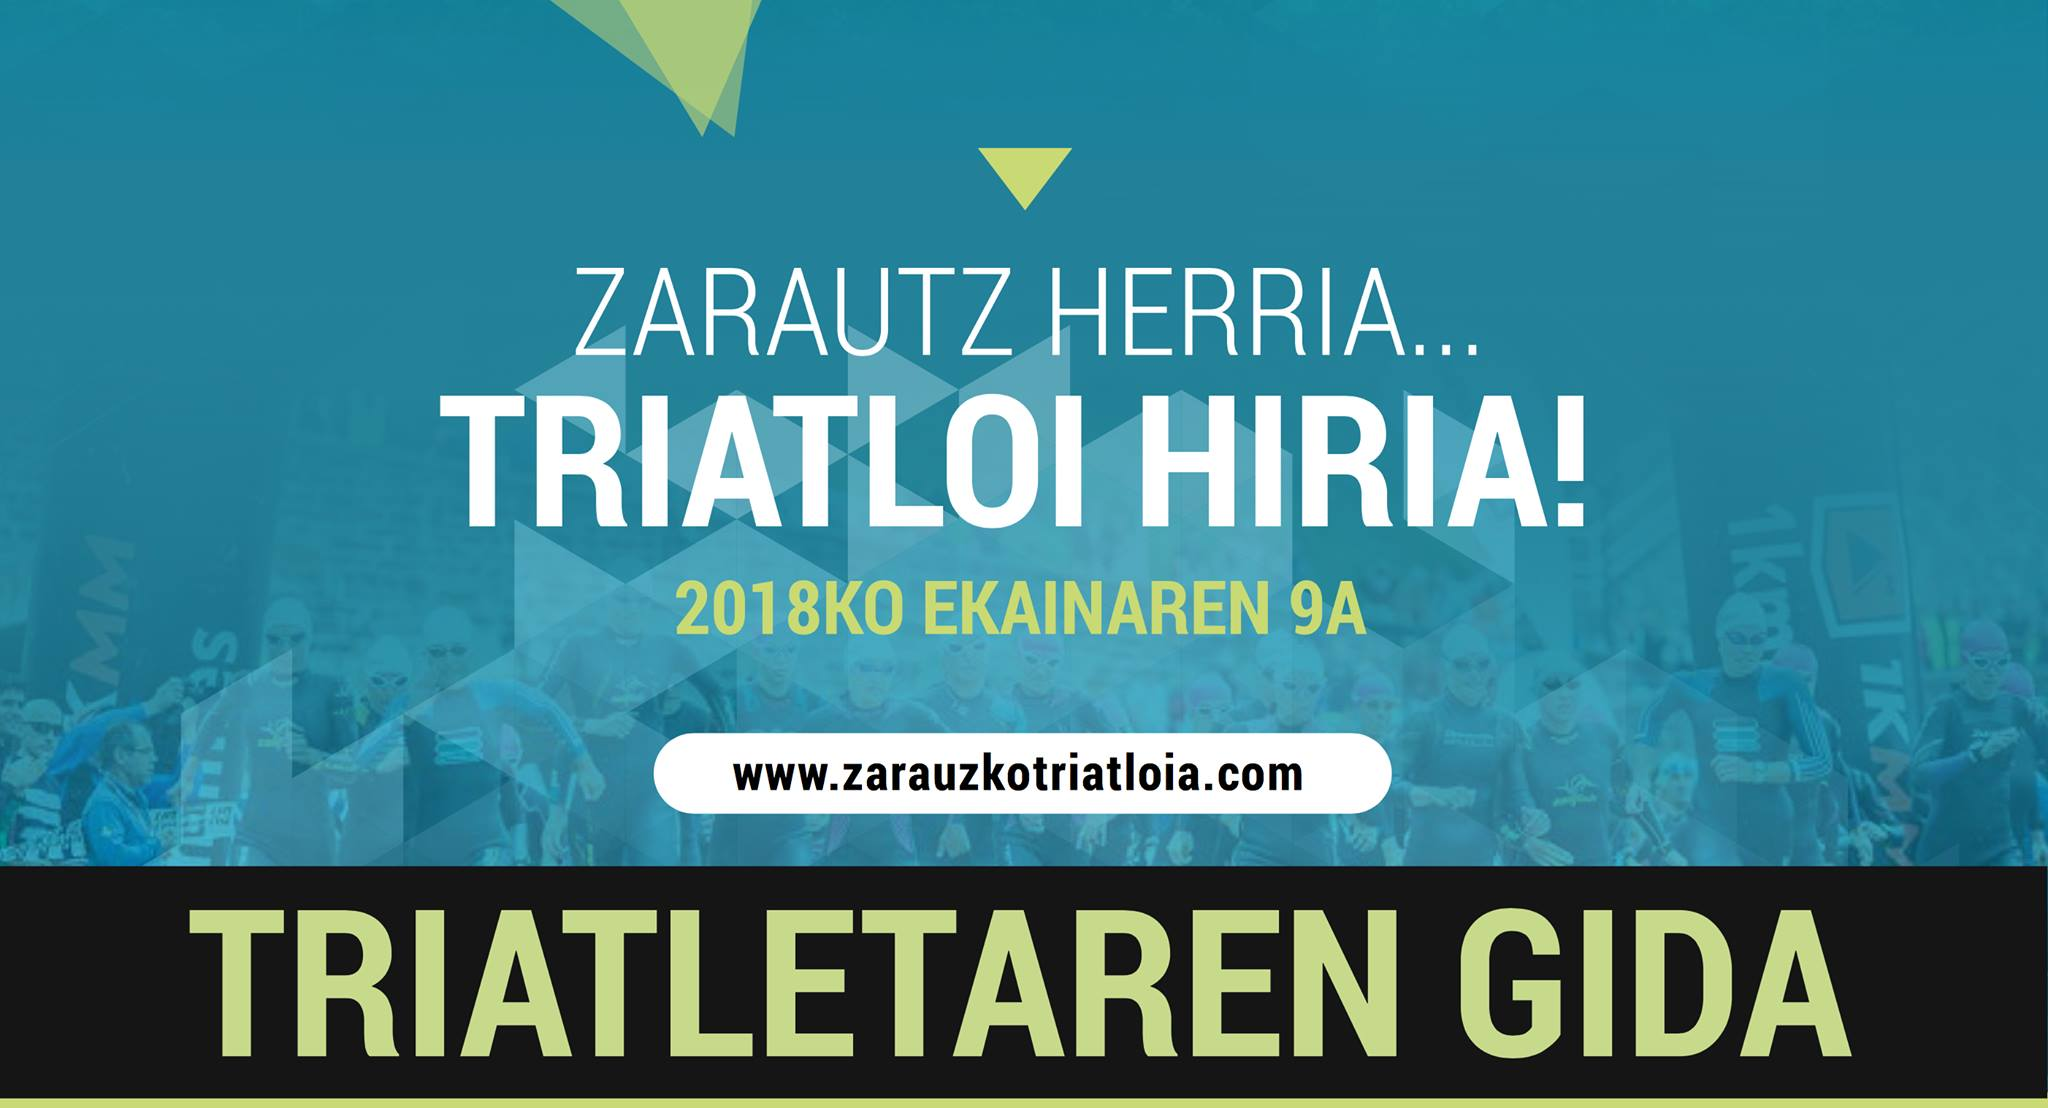 Triatlateren Gida